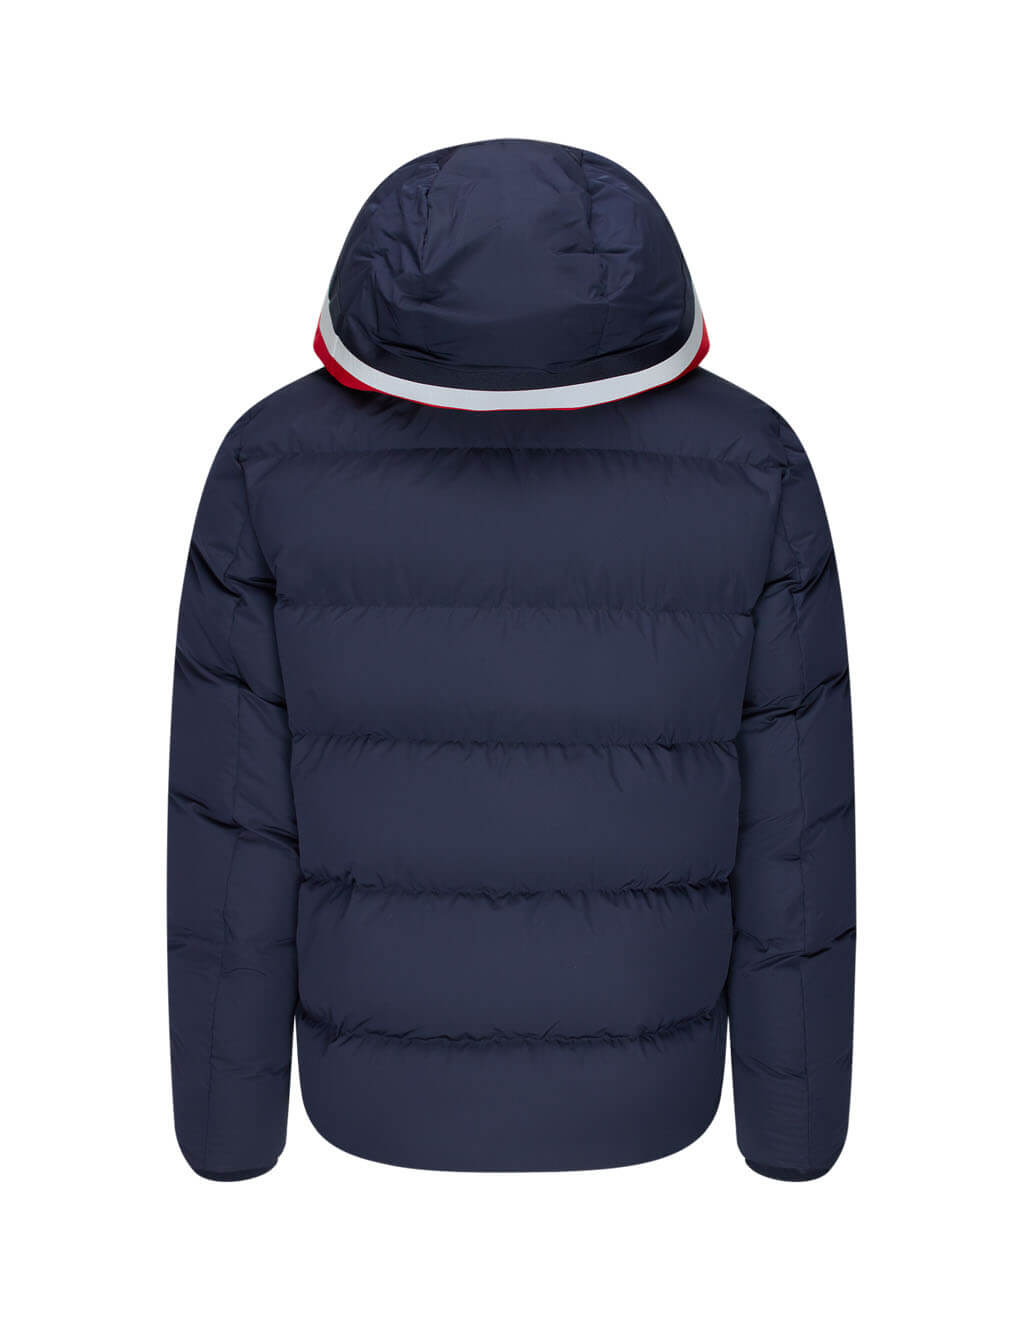 Moncler Men's Giulio Fashion Dark Blue Corborant Jacket 0911A55600C059974S